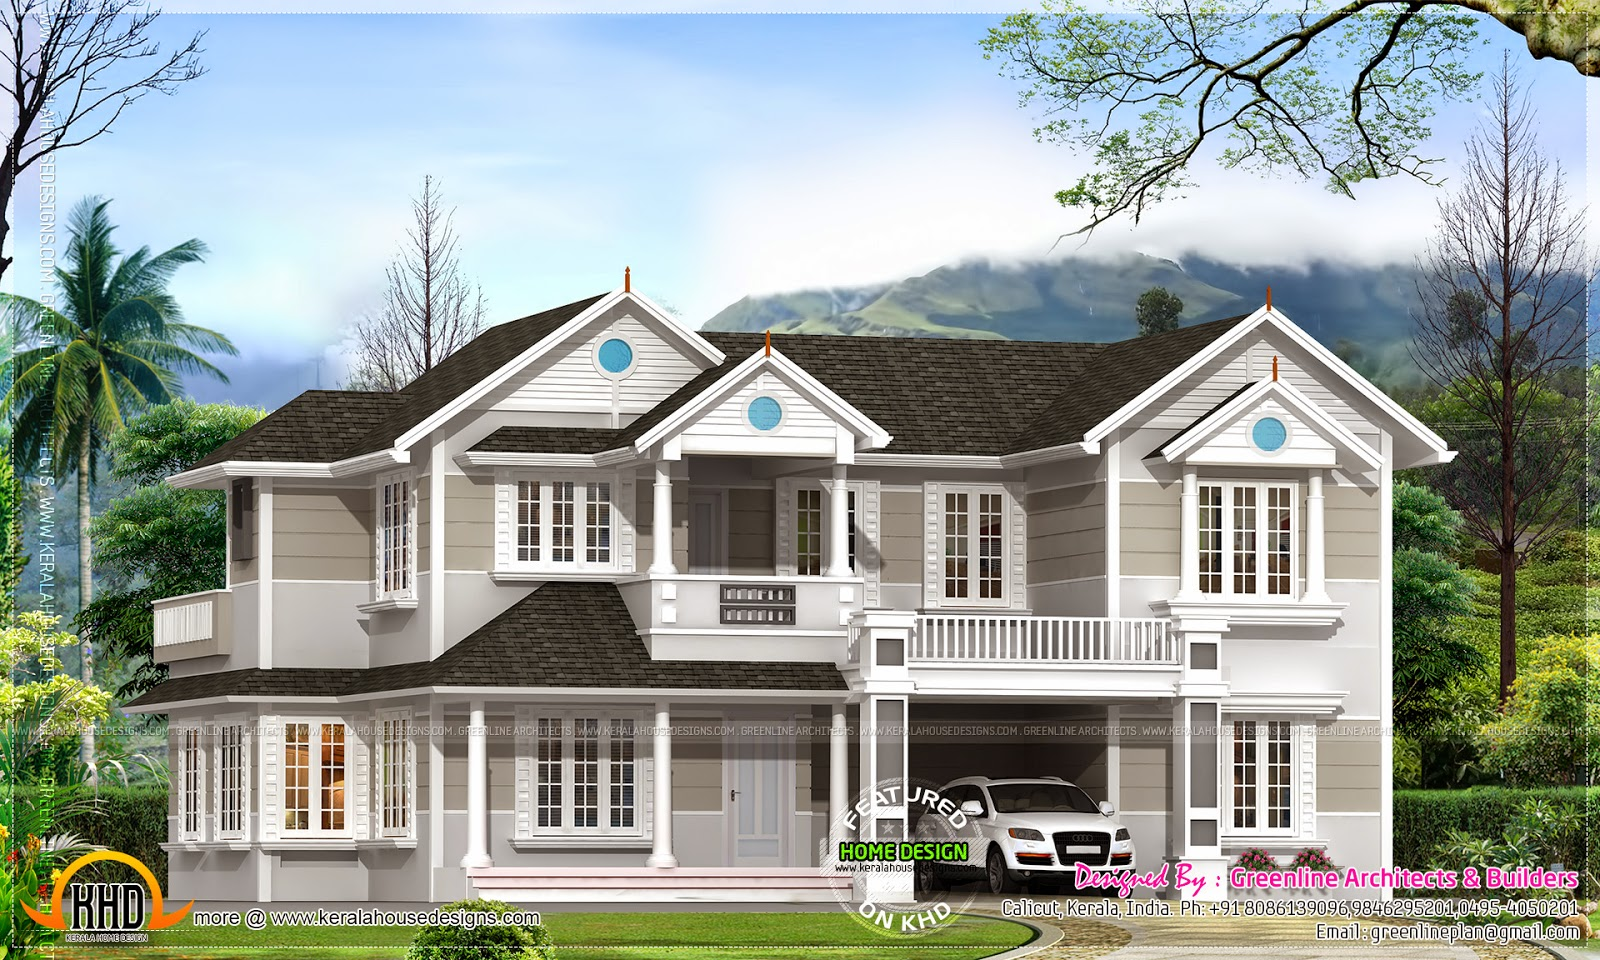 Colonial house plan - Kerala home design and floor plans